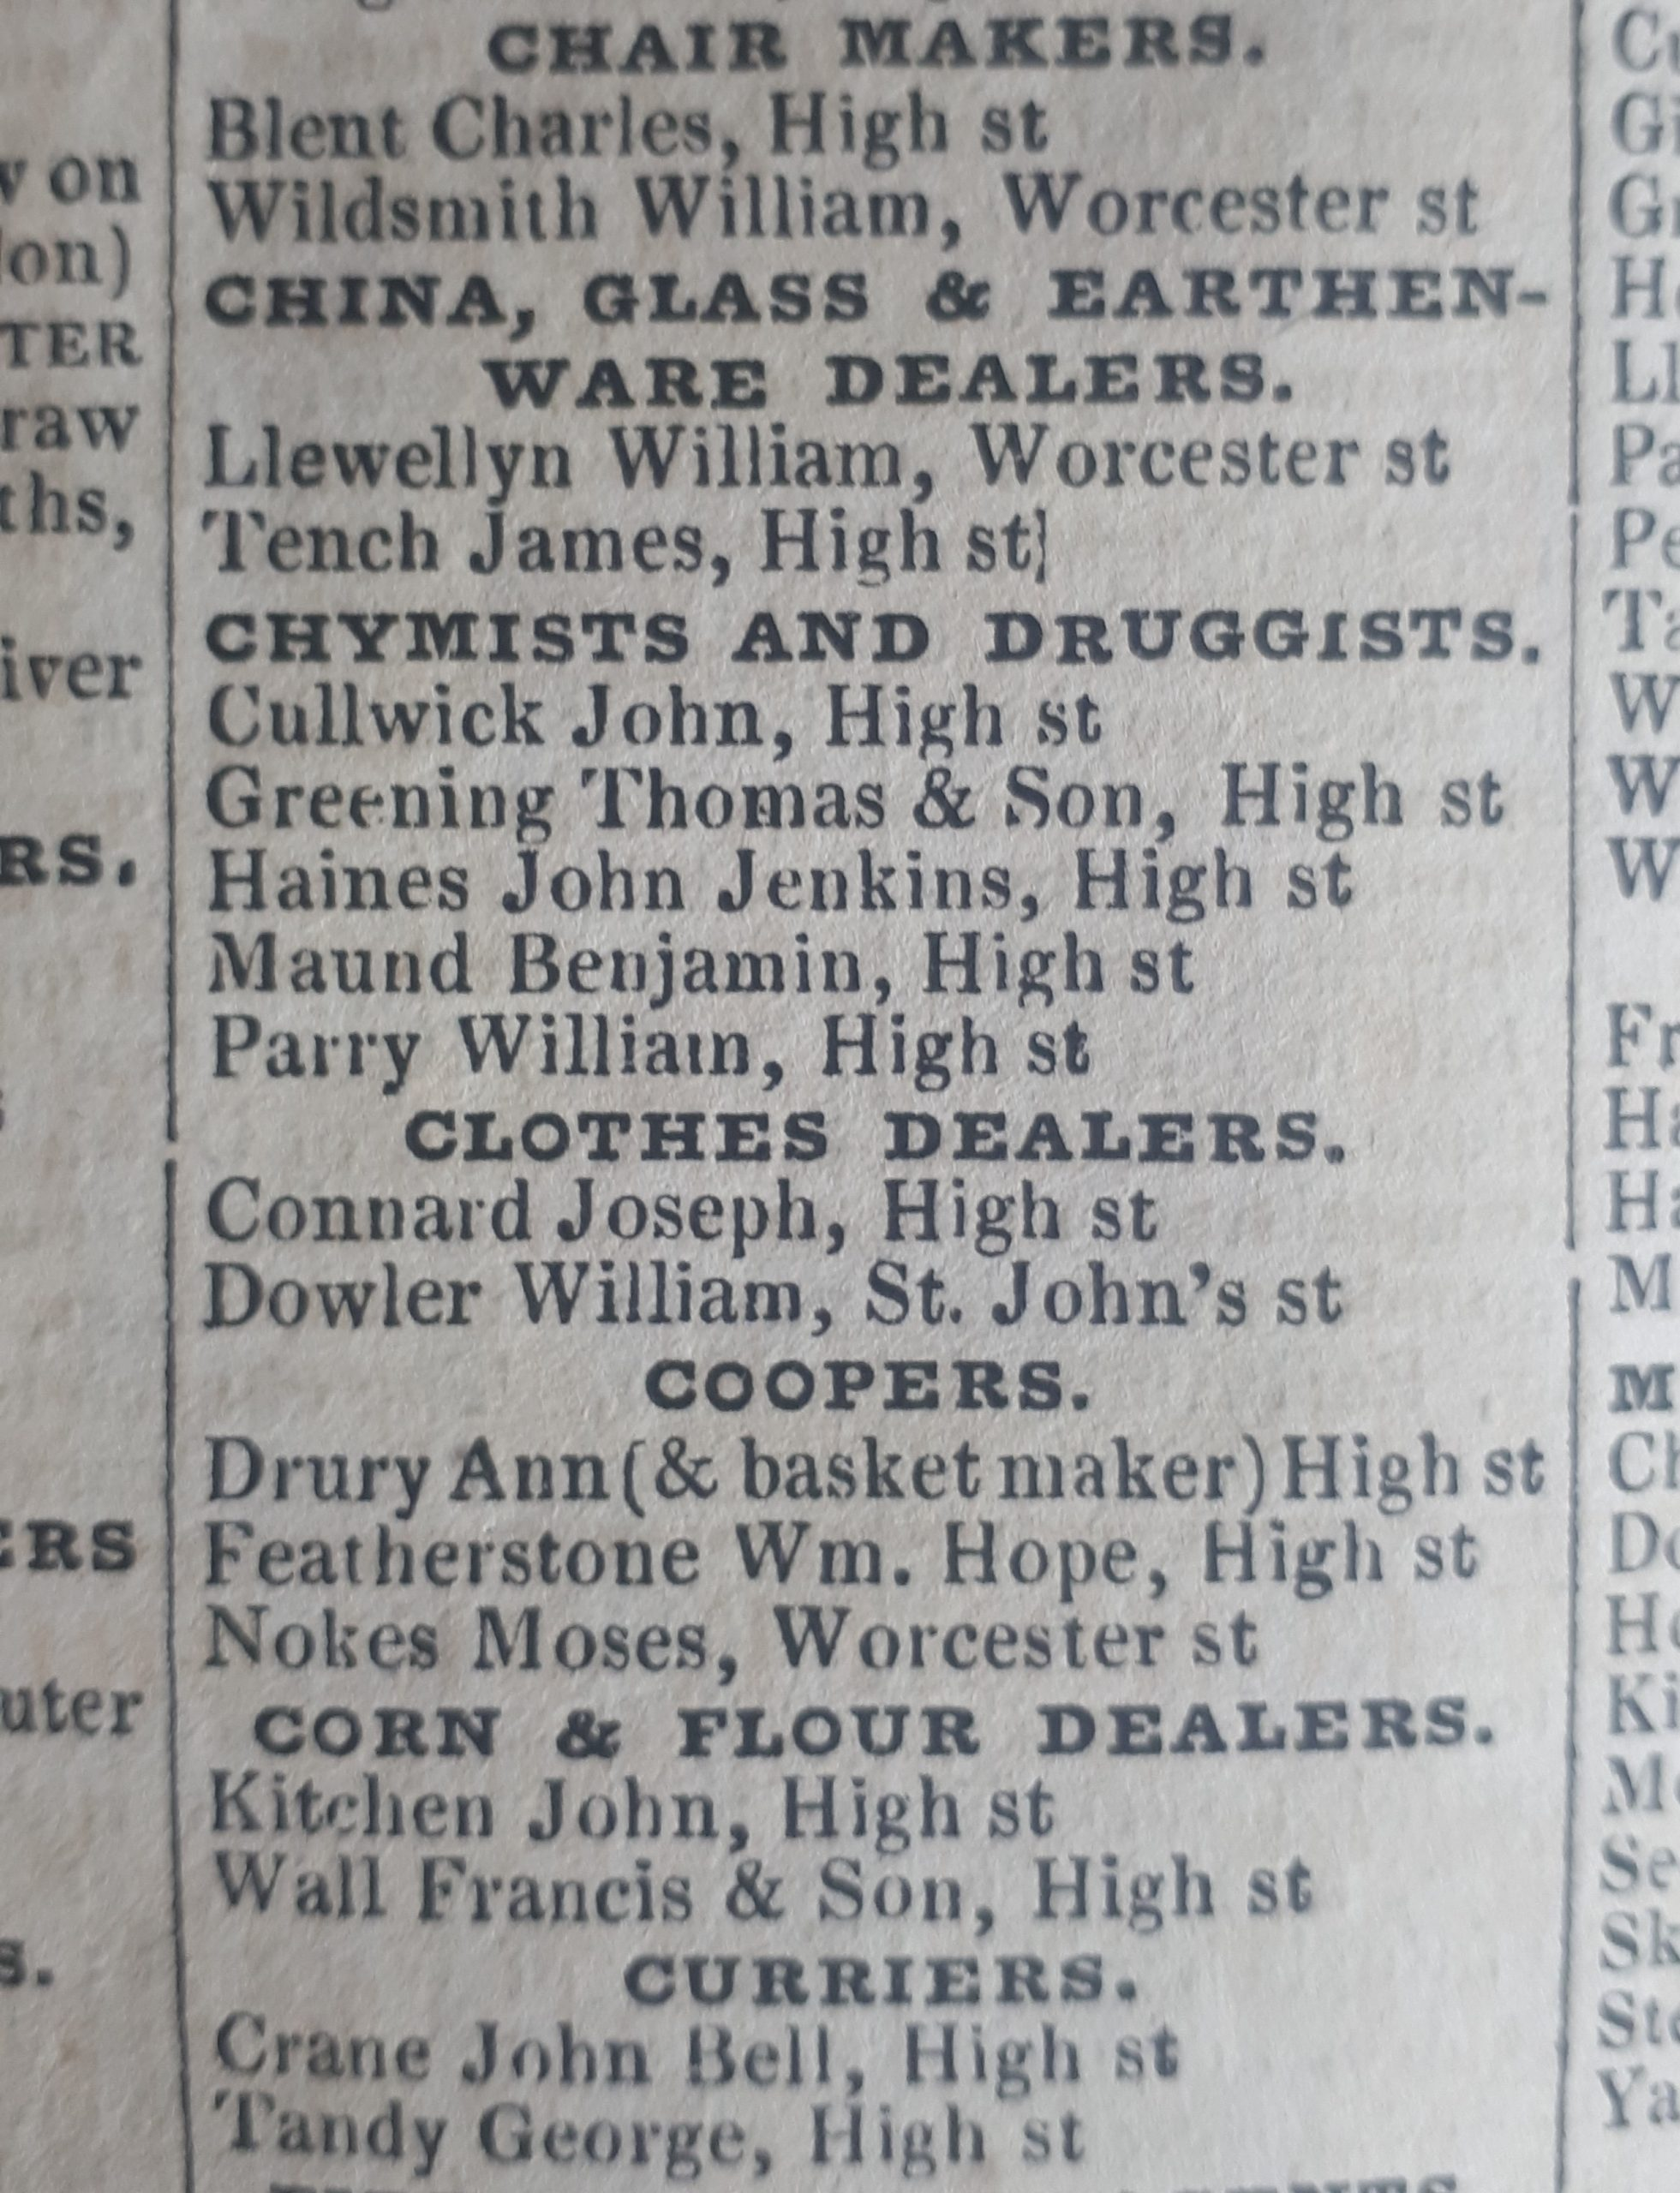 Evidence of Maund as a Chymist & Druggist in Piggot & Co. Commercial Directory, 1835